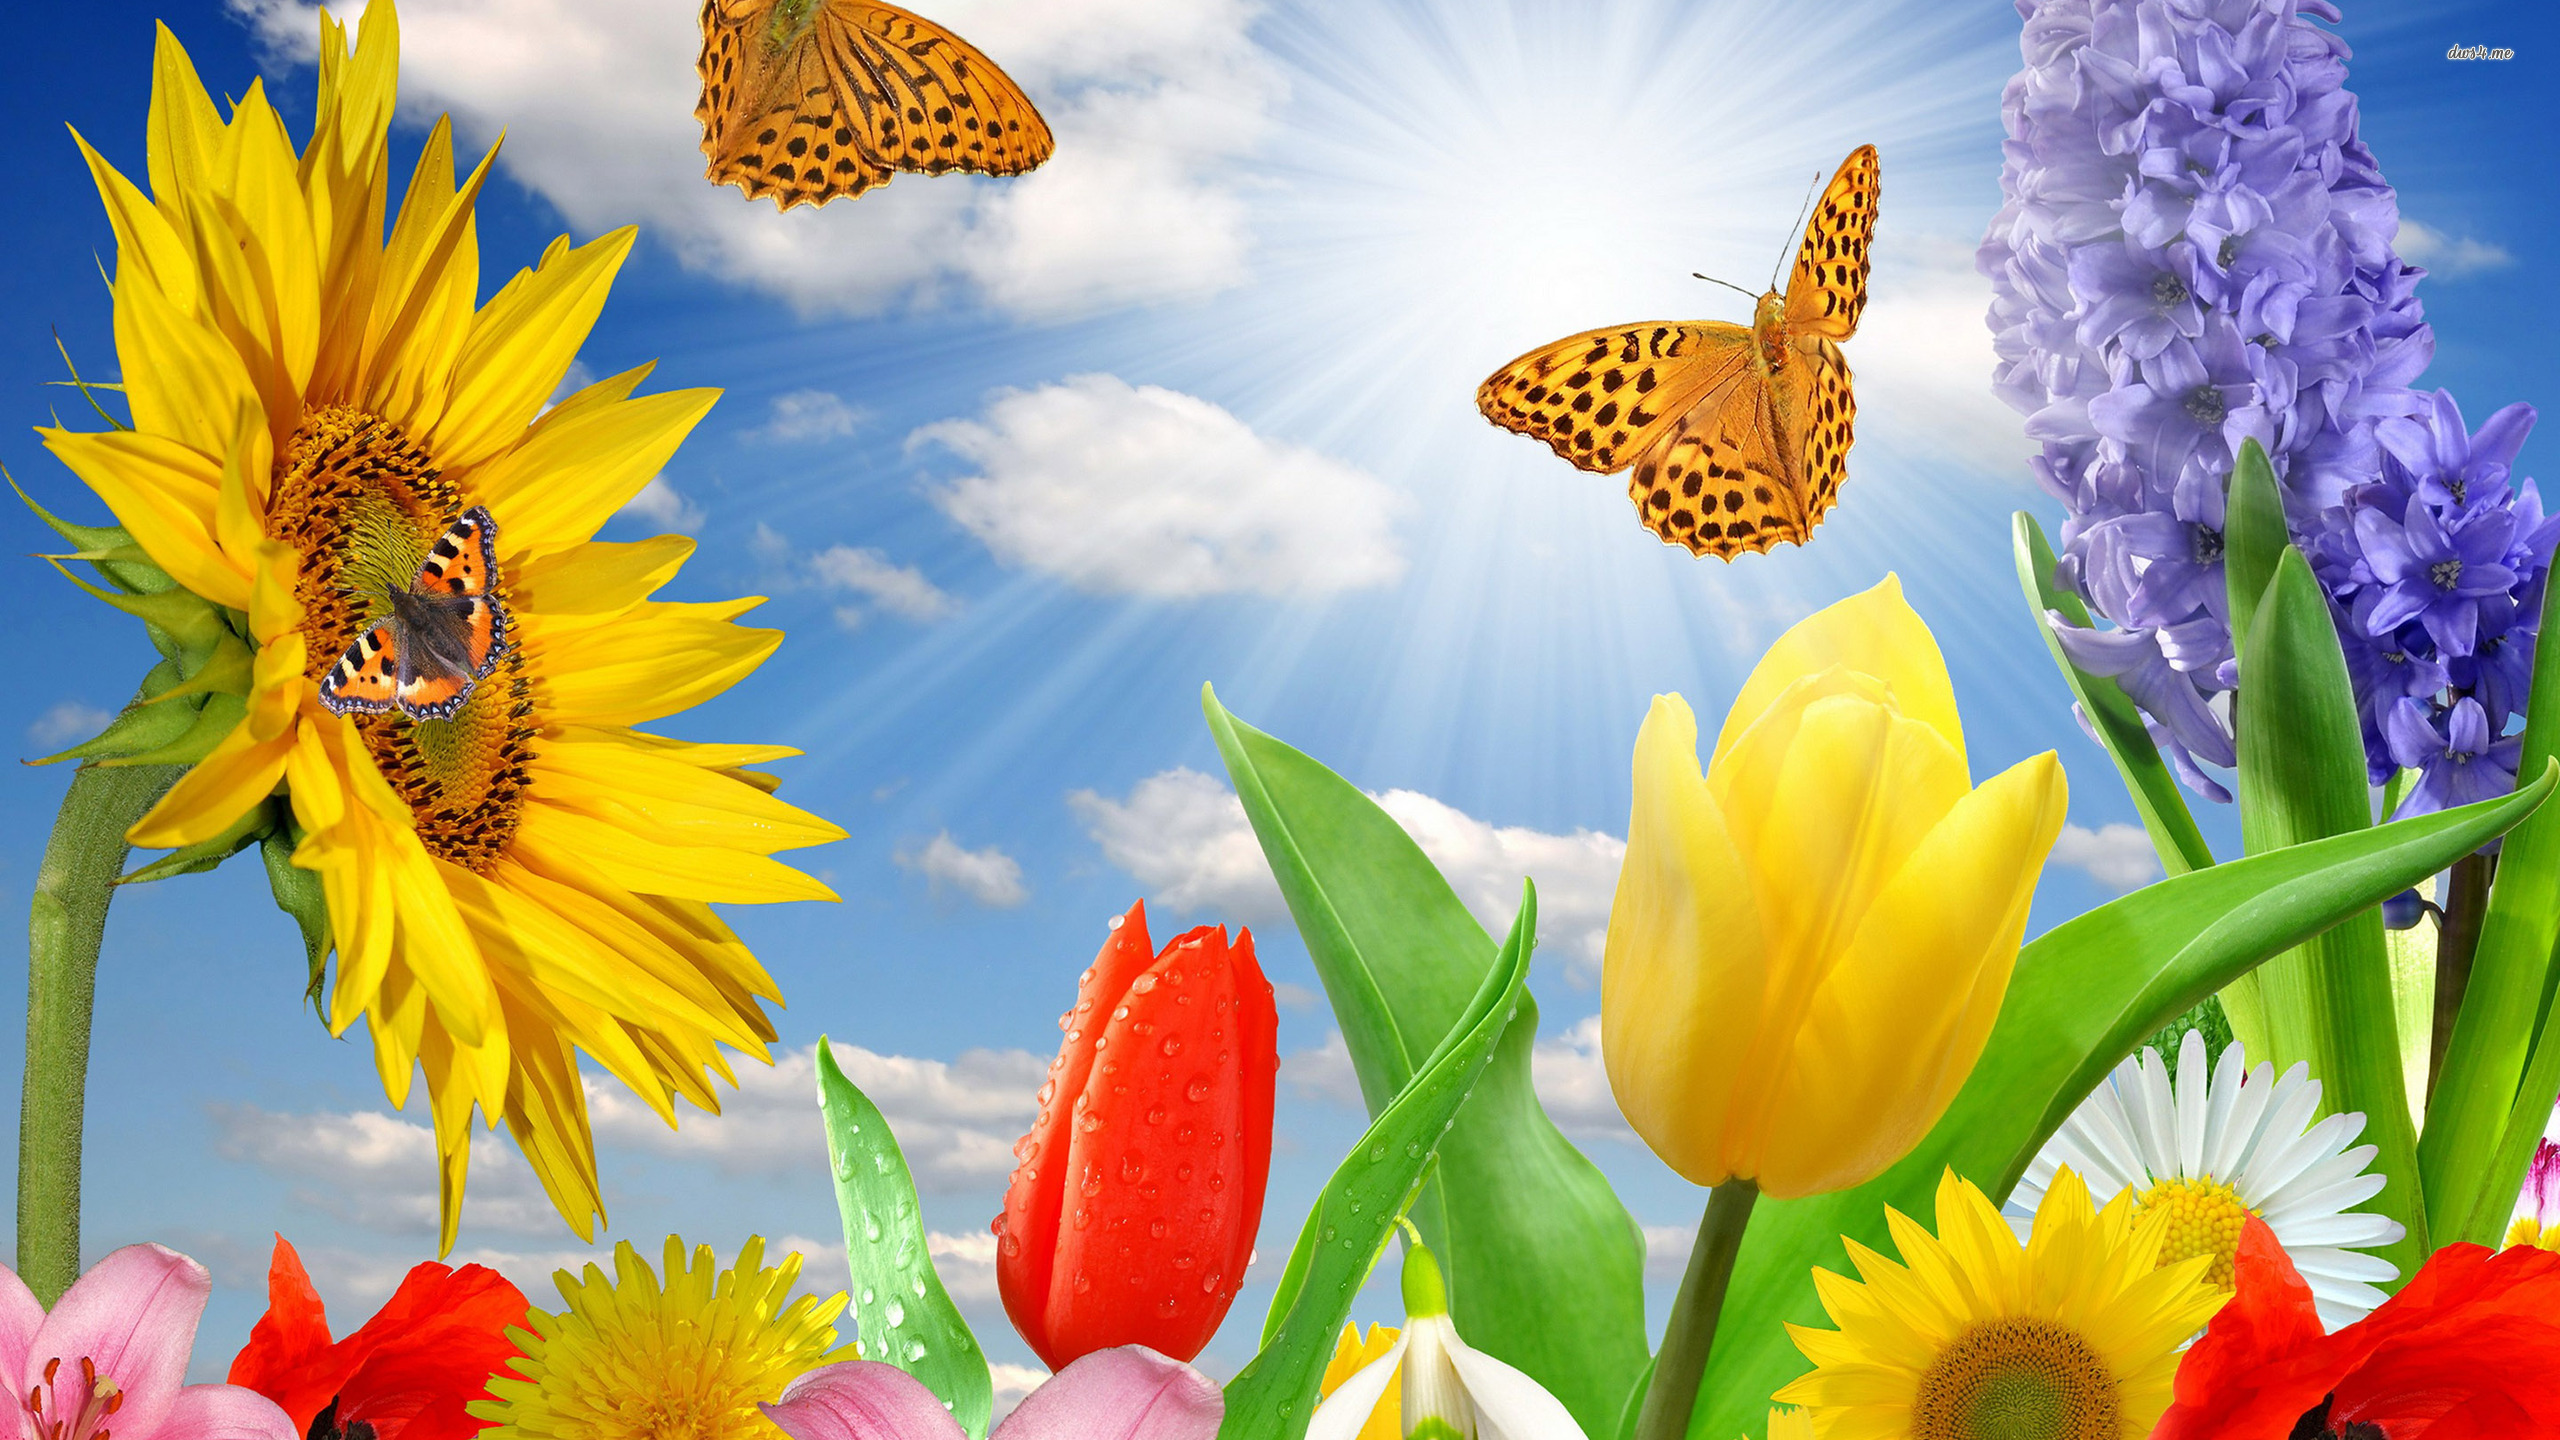 Spring Flowers And Butterflies Background Hd Cool 7 Wackyface